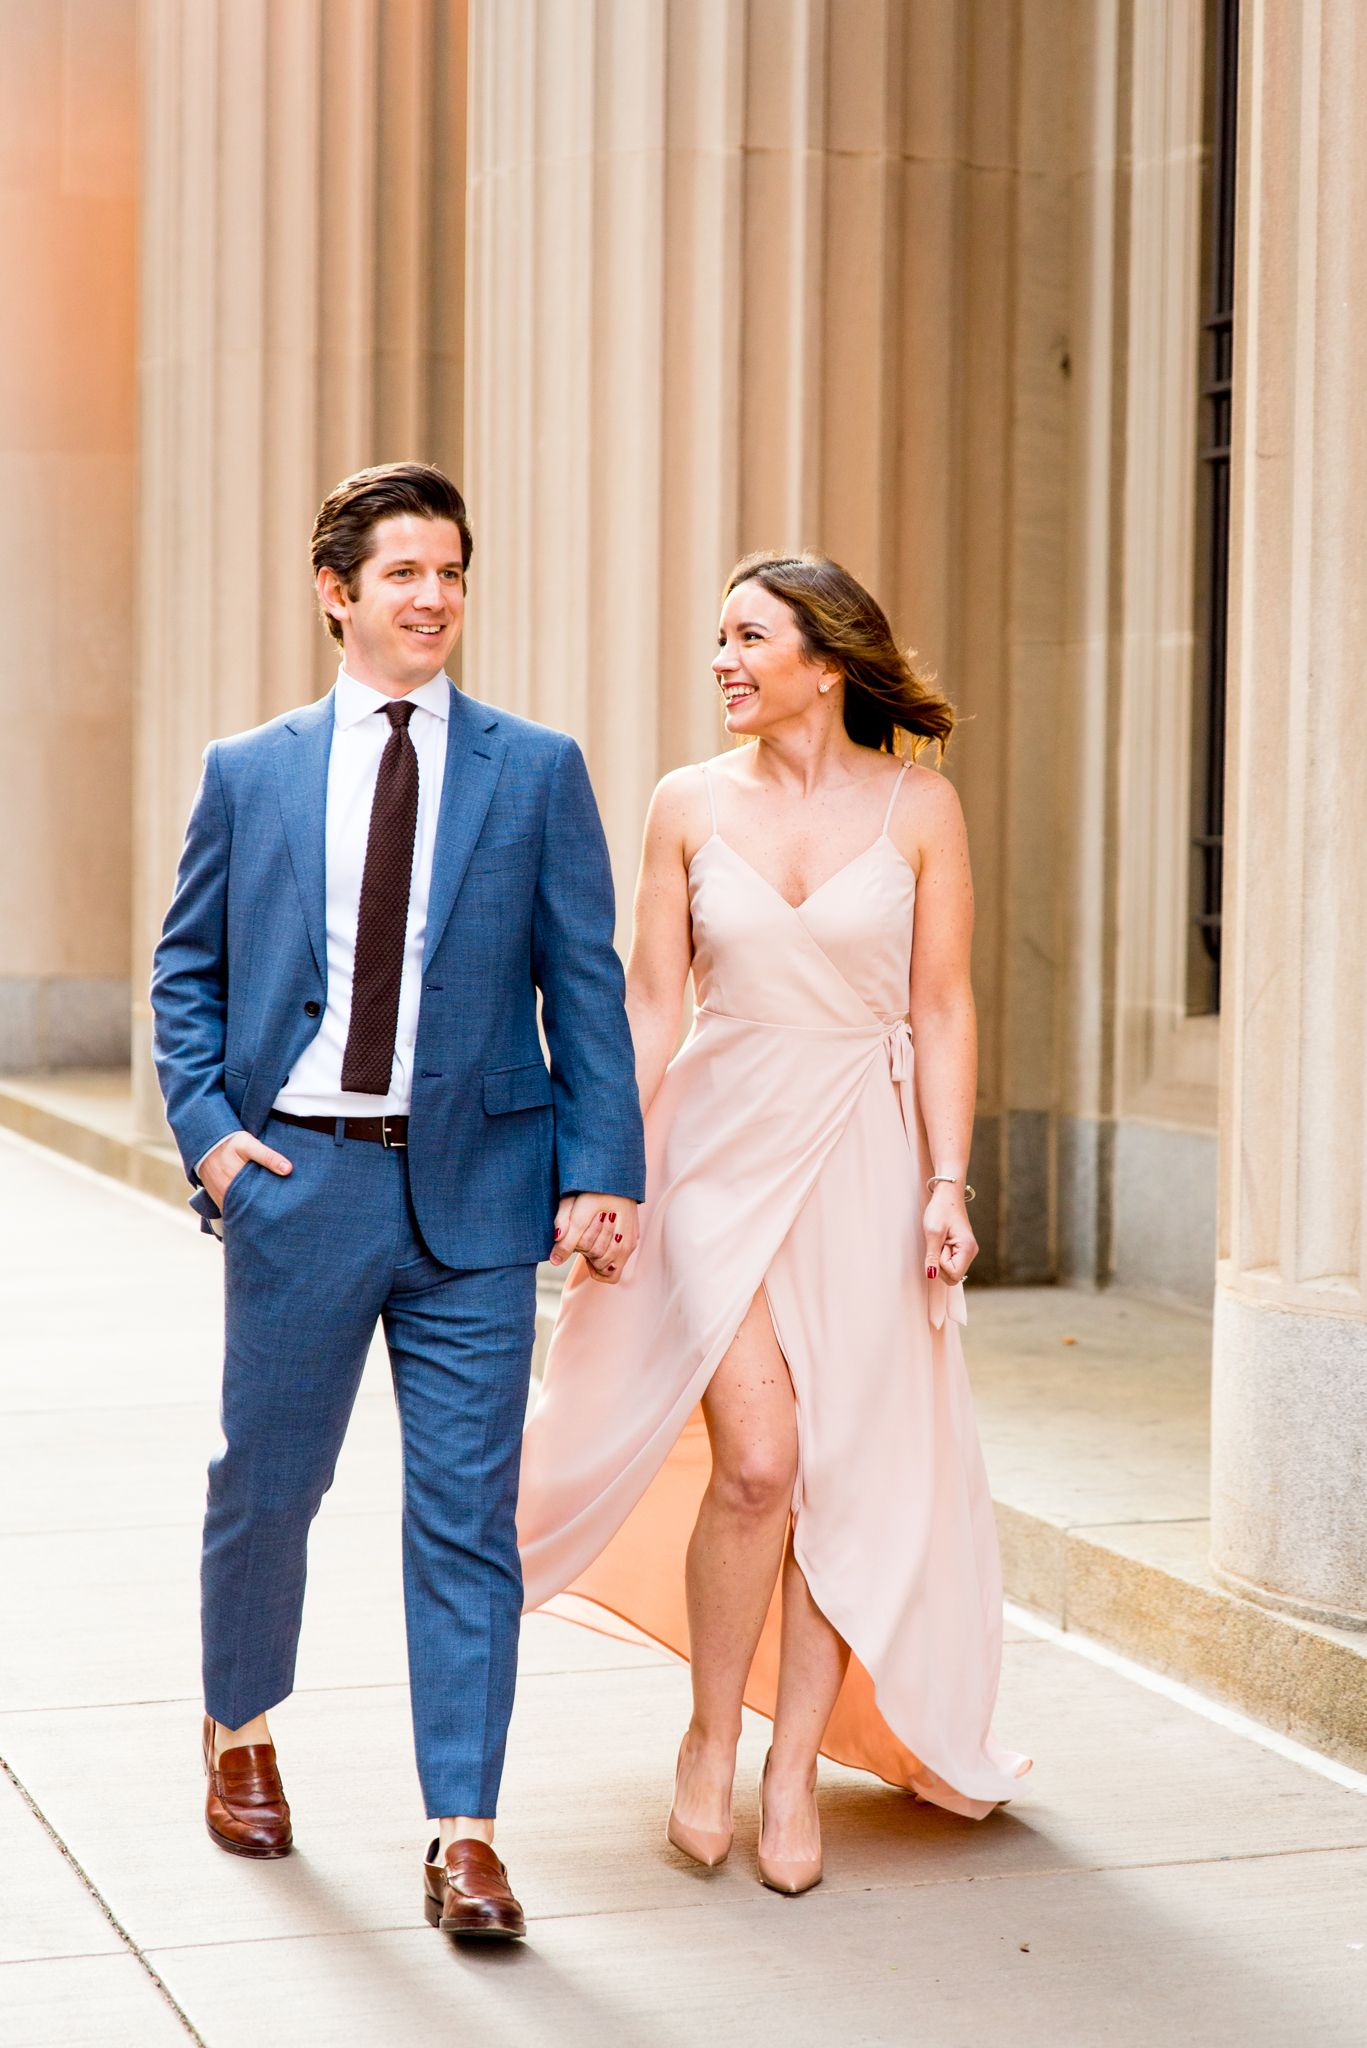 woman in blush pink dress holding hands with man in navy suit walking around Chicago Board of Trade